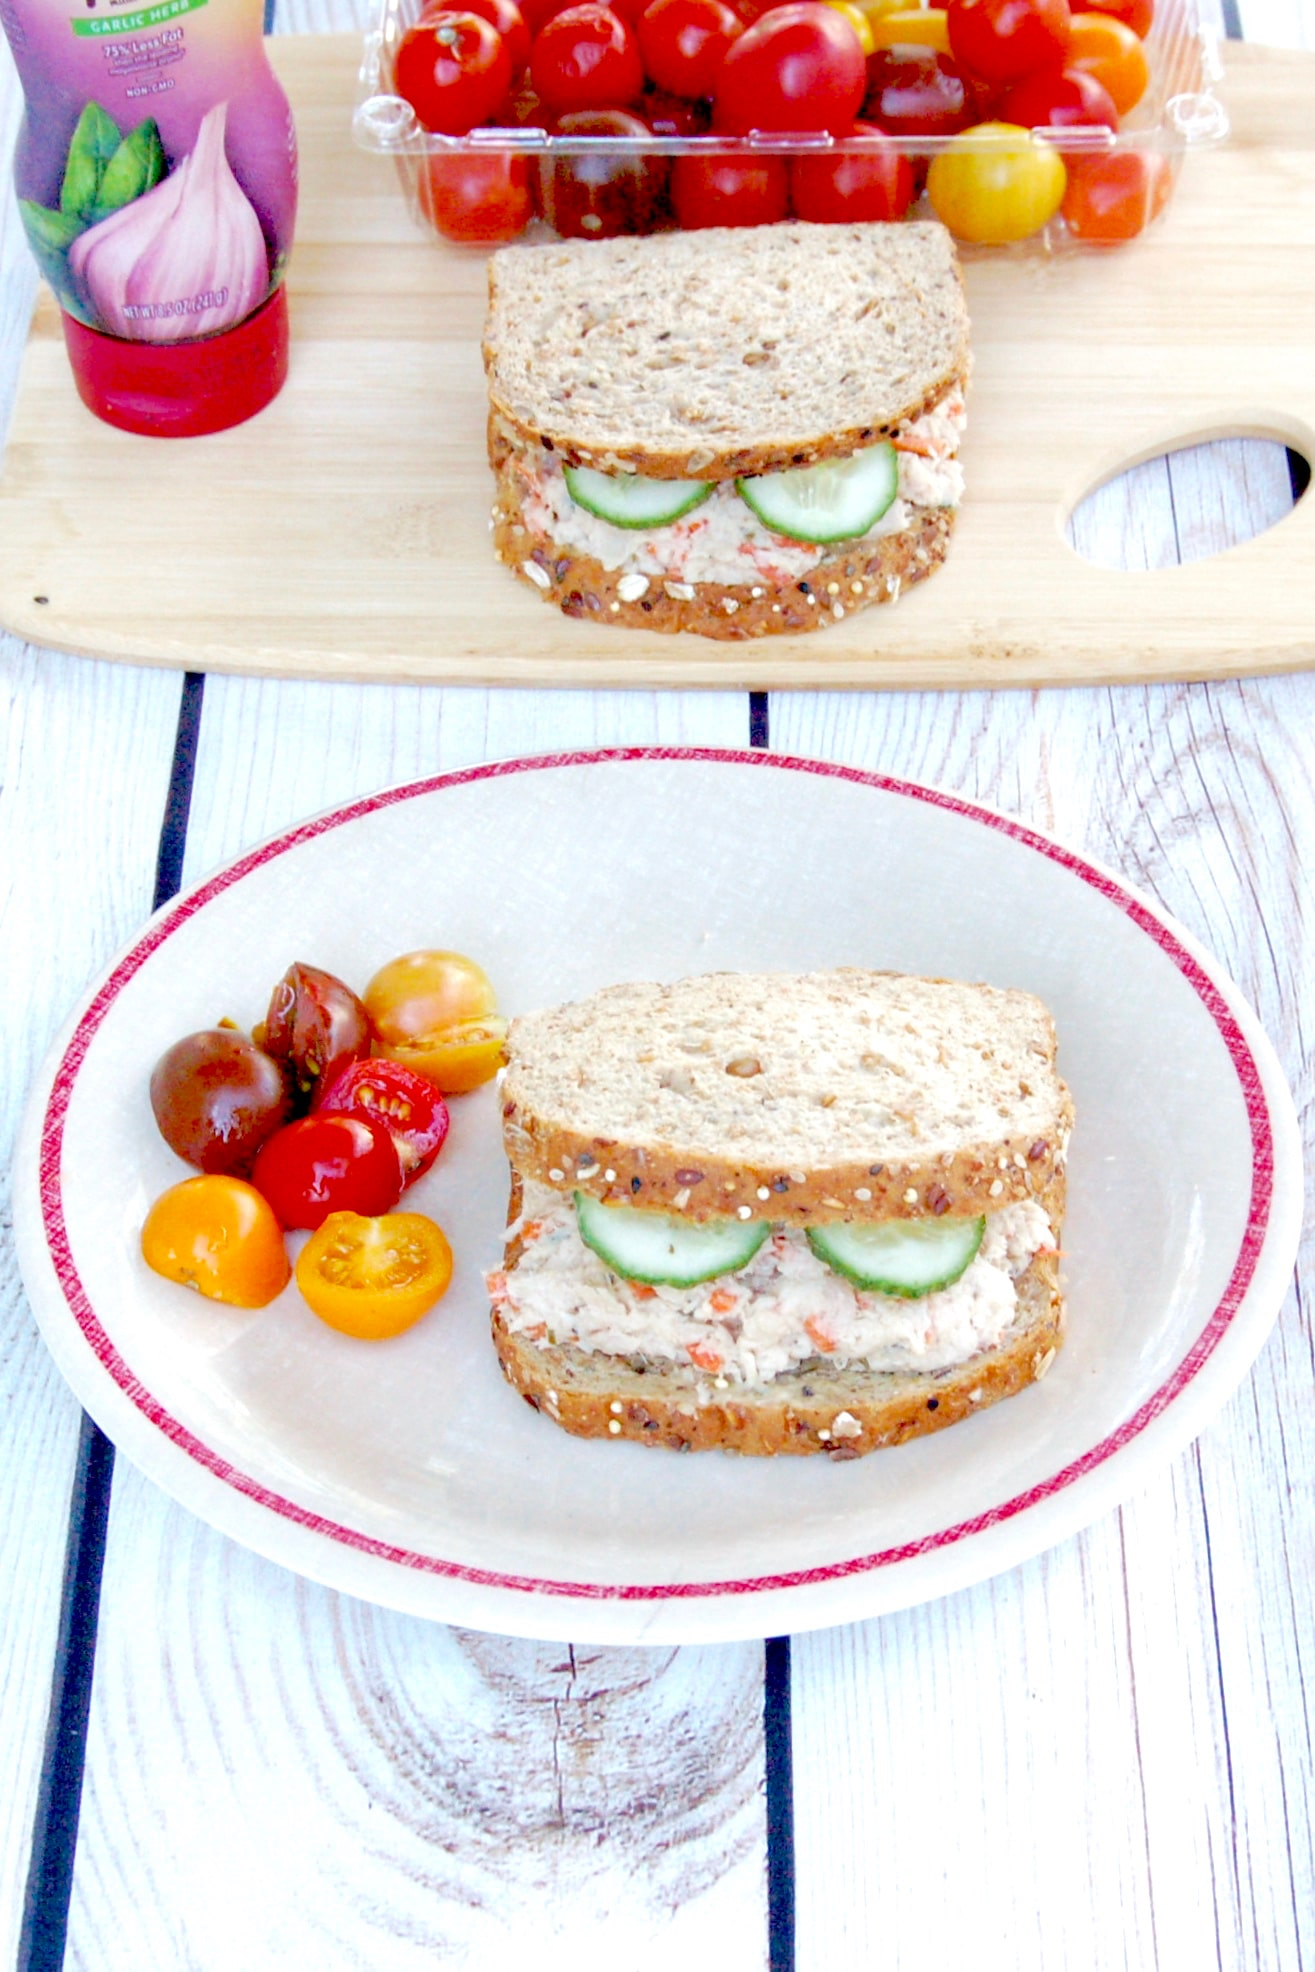 Mayo-Free Tuna Hummus Salad Sandwich | The classic tuna sandwich gets an upgrade with this mayo-free tuna hummus salad, perfect for the kids' lunchbox or anyone's mid-day meal! Get the dairy-free recipe @jlevinsonrd